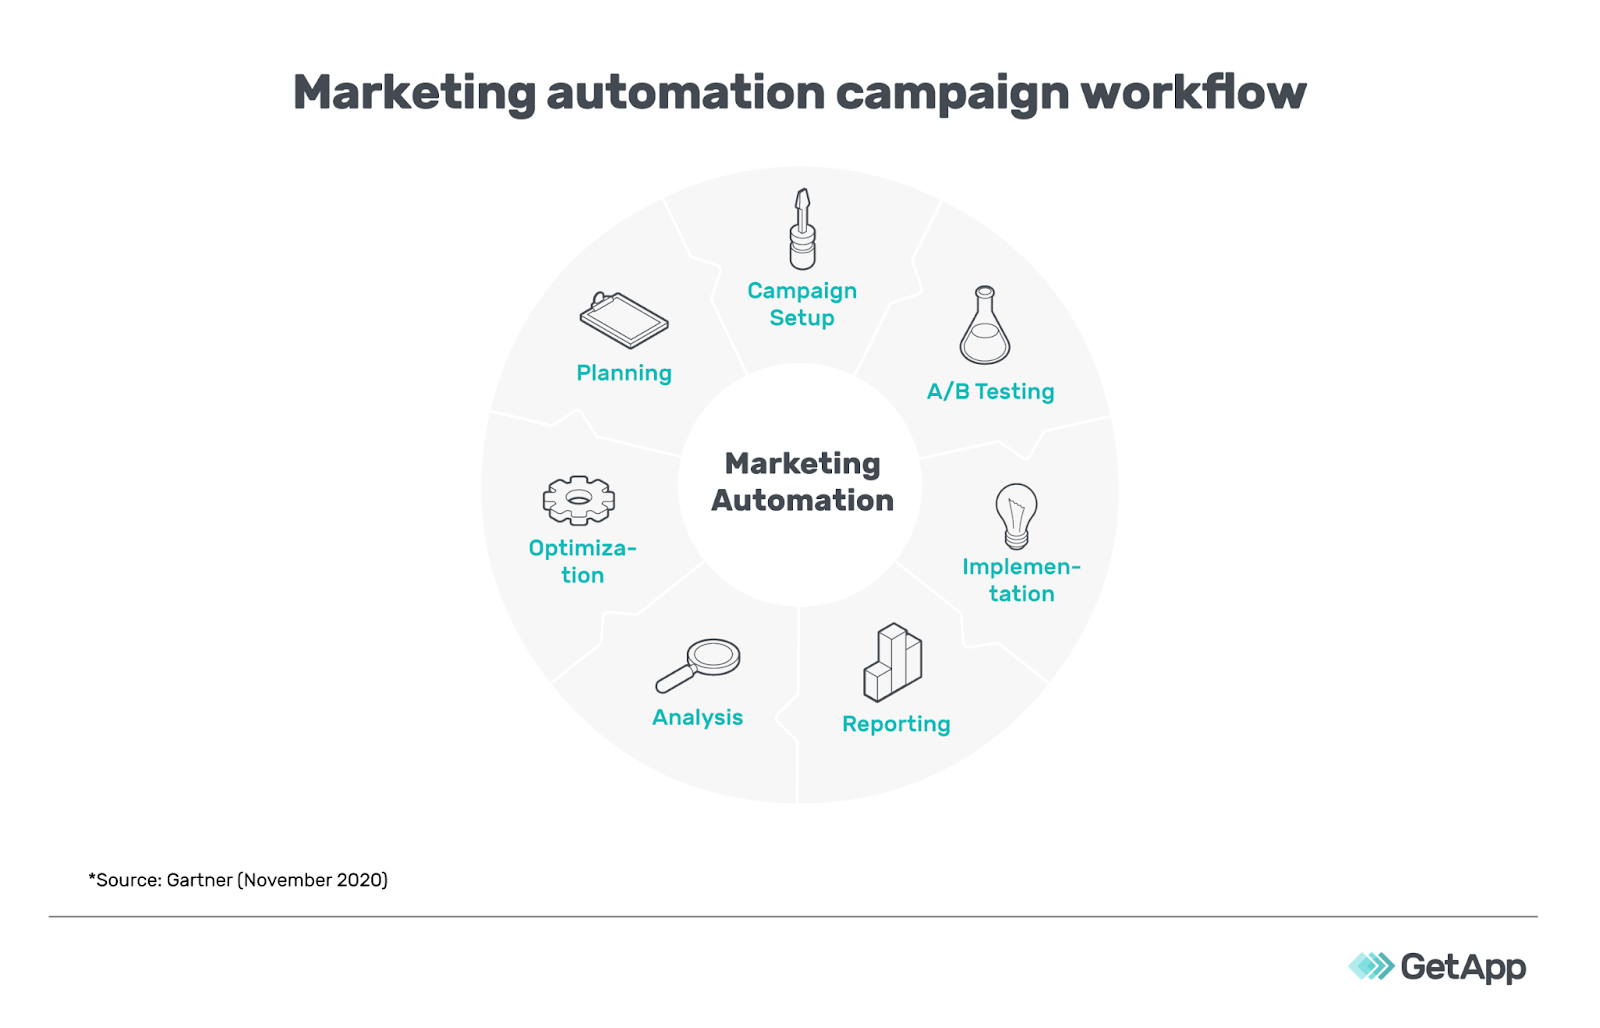 Example of a marketing automation campaign workflow